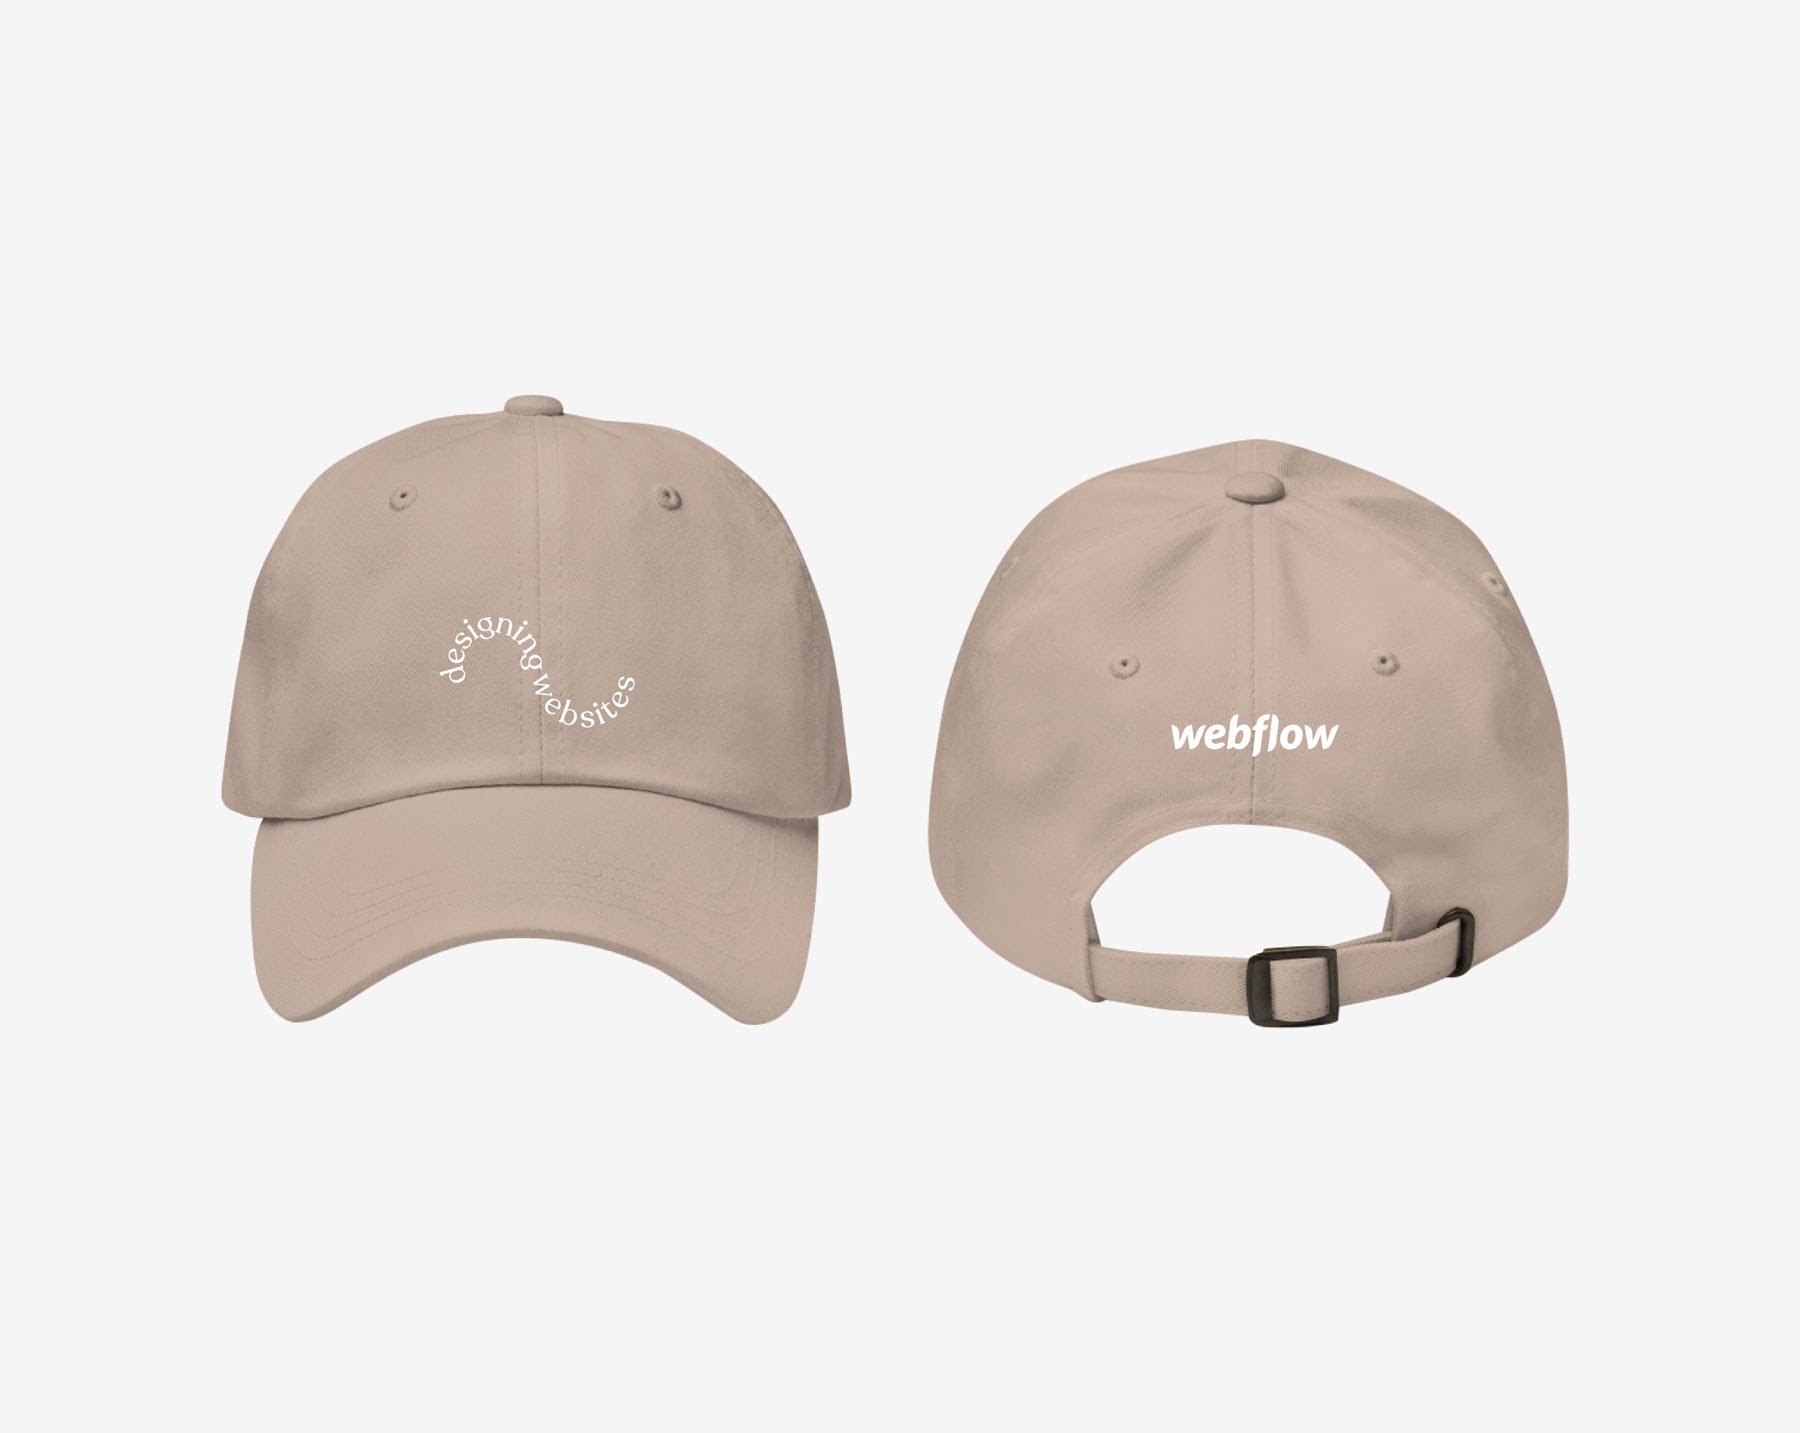 """A low profile, adjustable hat with a curved visor and curved texted on the front saying """"designing websites"""" plus a small Webflow logo on the back."""